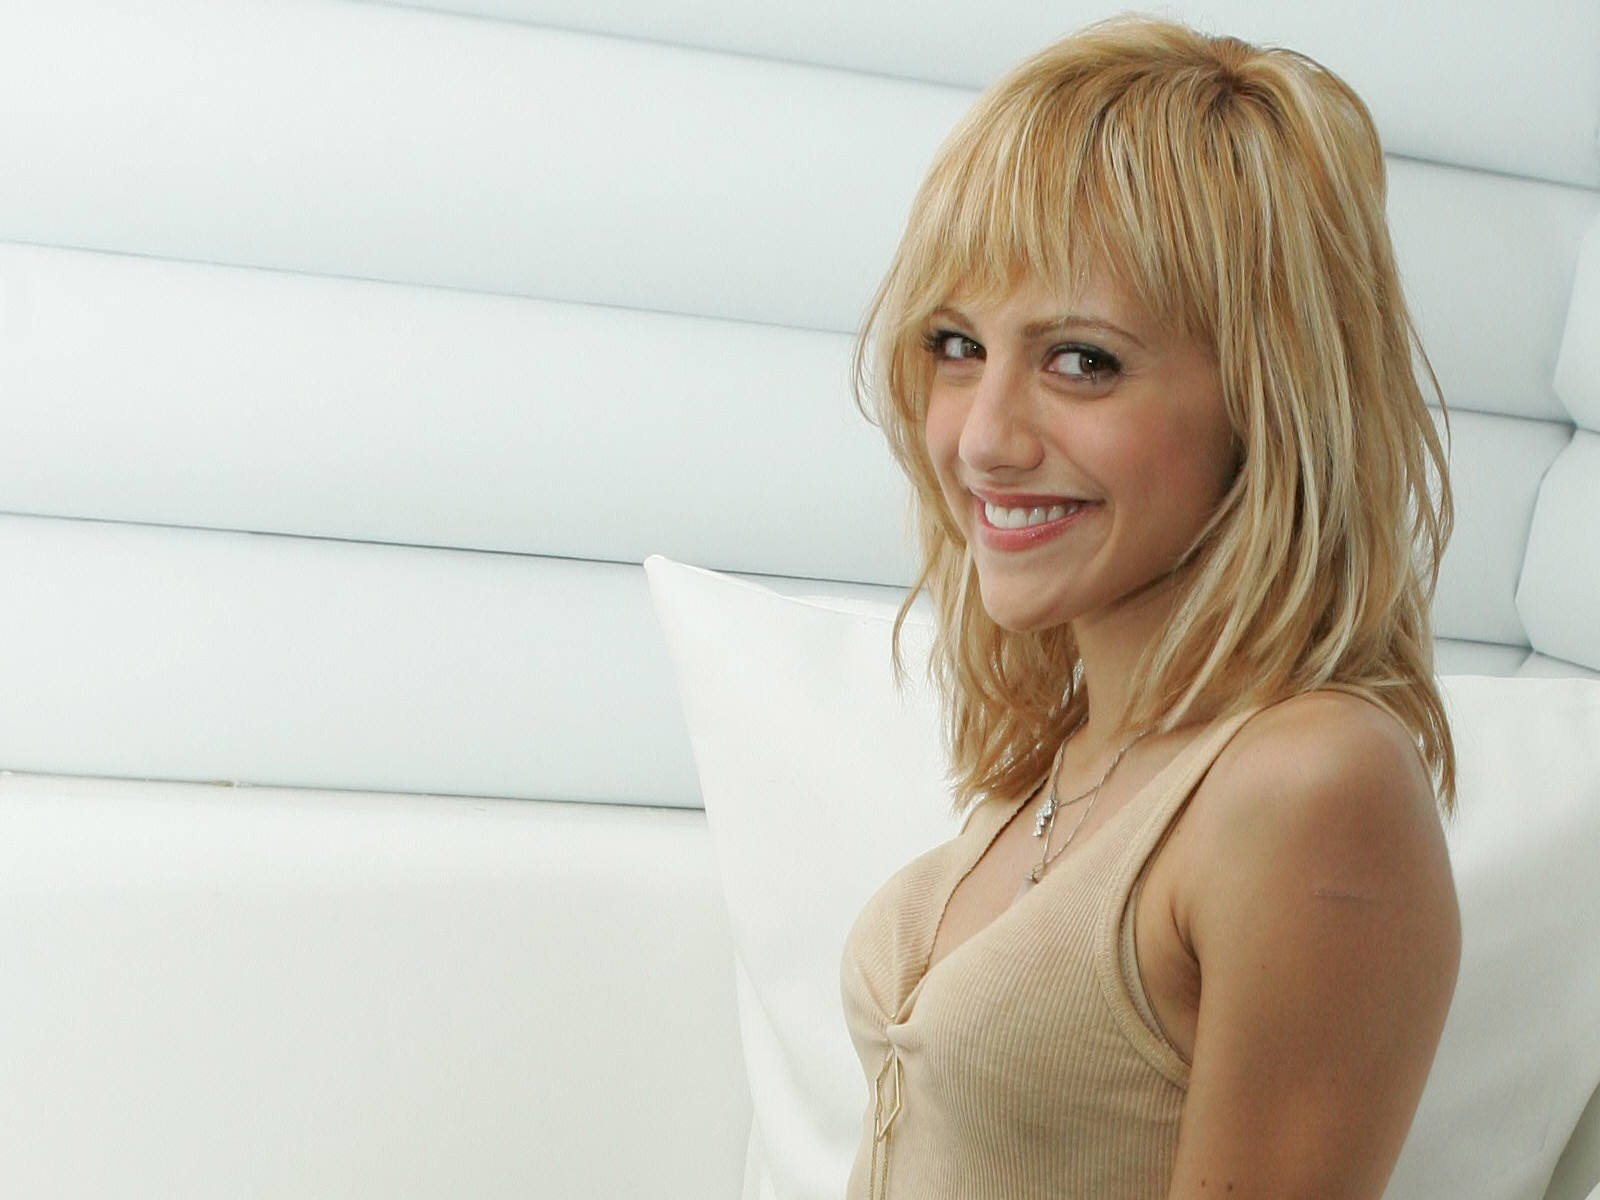 brittany murphy smile wallpaper 52713